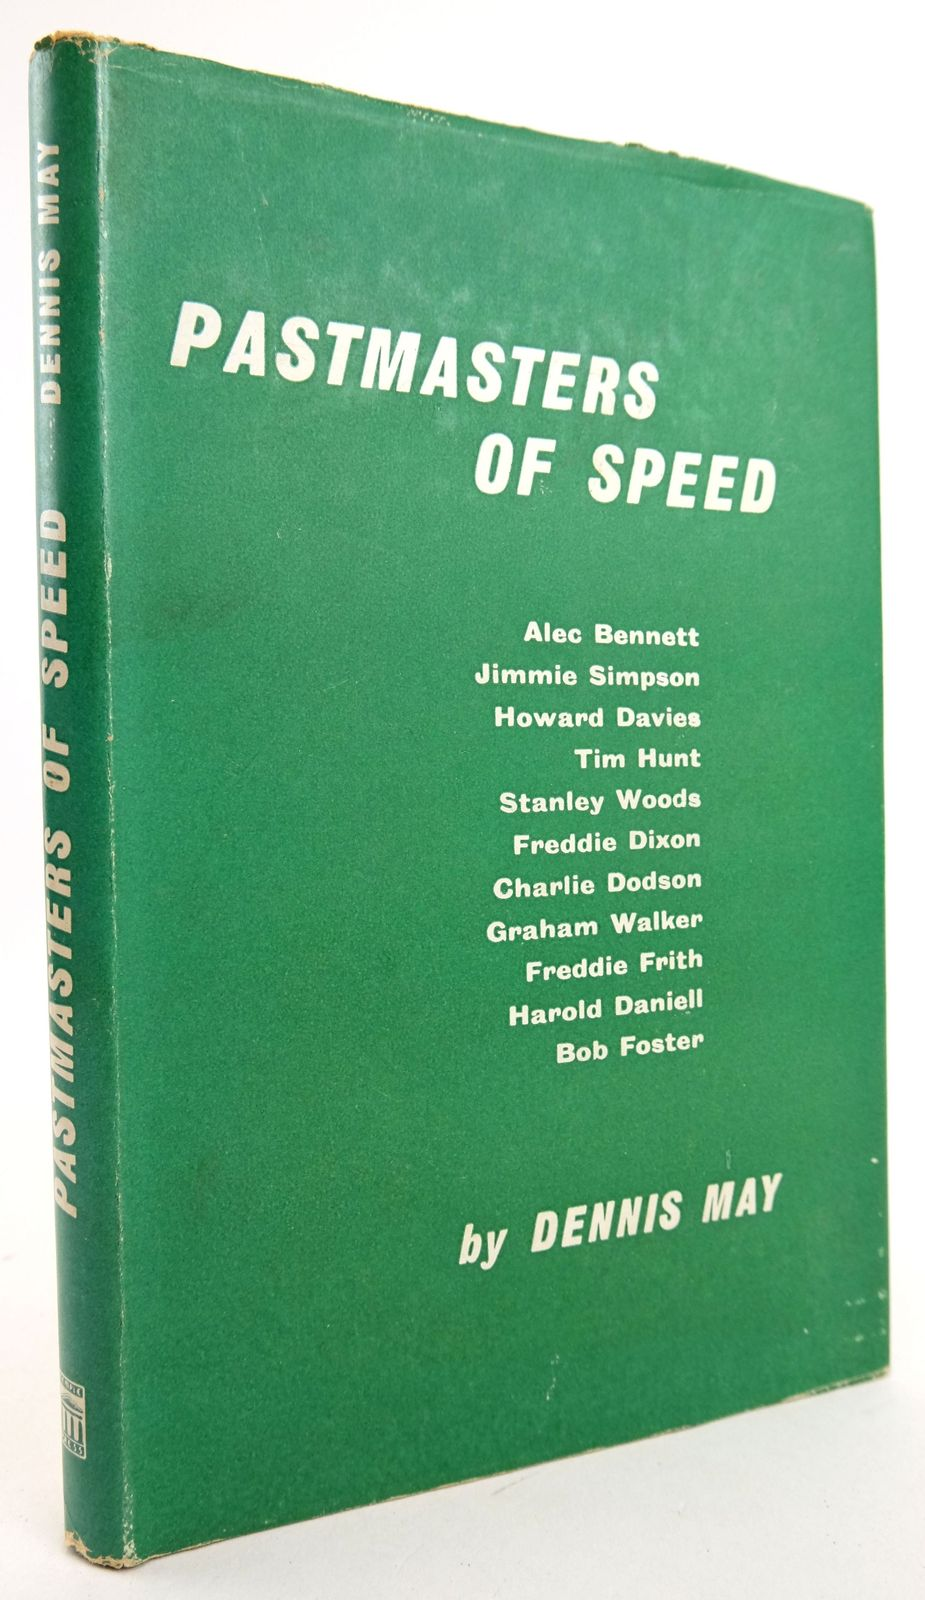 Photo of PASTMASTERS OF SPEED written by May, Dennis published by Temple Press (STOCK CODE: 1819453)  for sale by Stella & Rose's Books